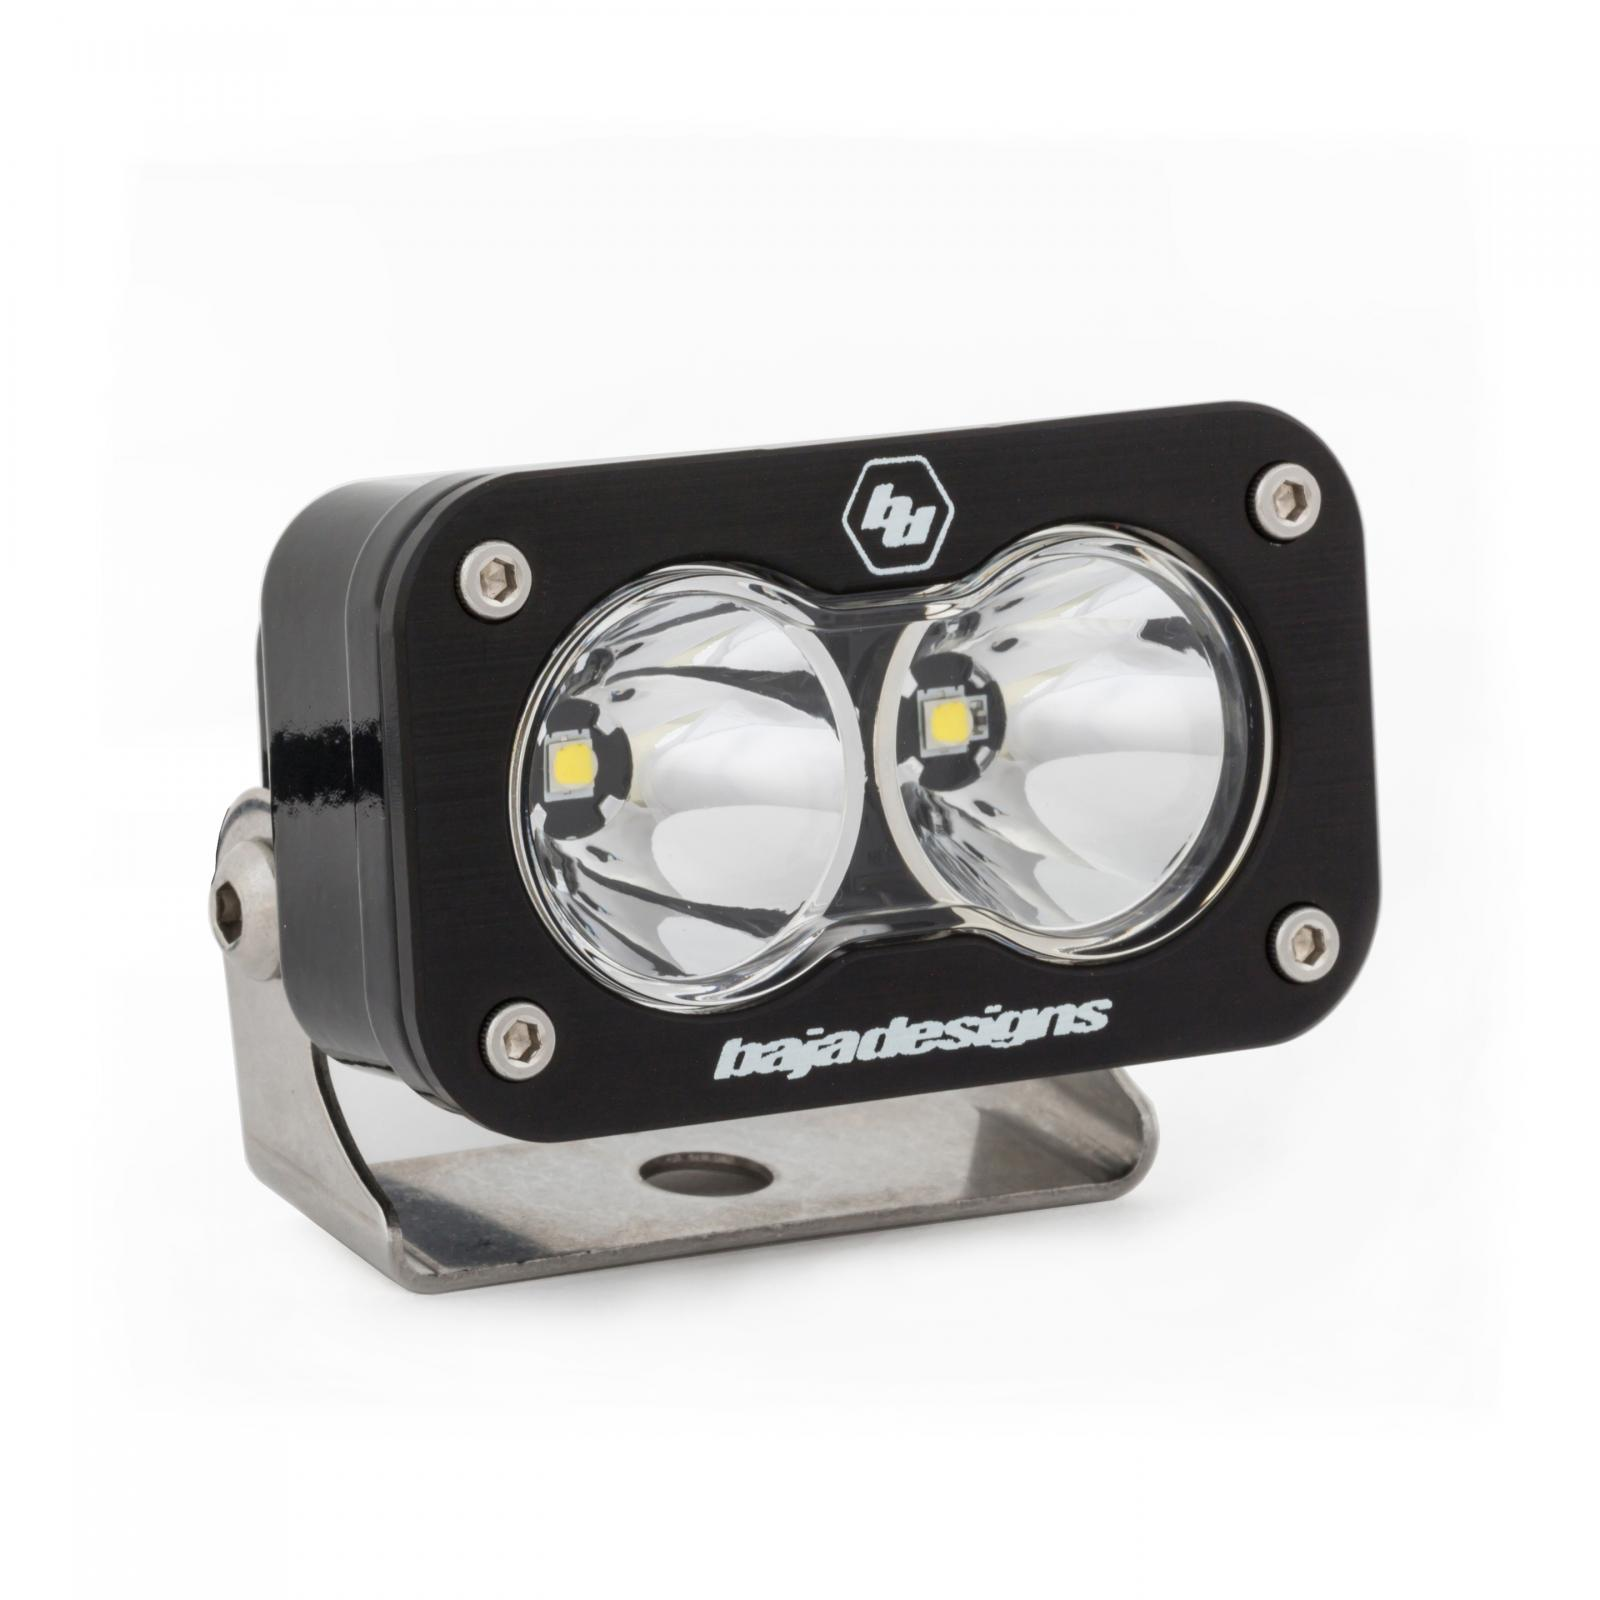 LED Work Light Clear Lens Work/Scene Pattern S2 Pro Baja Designs